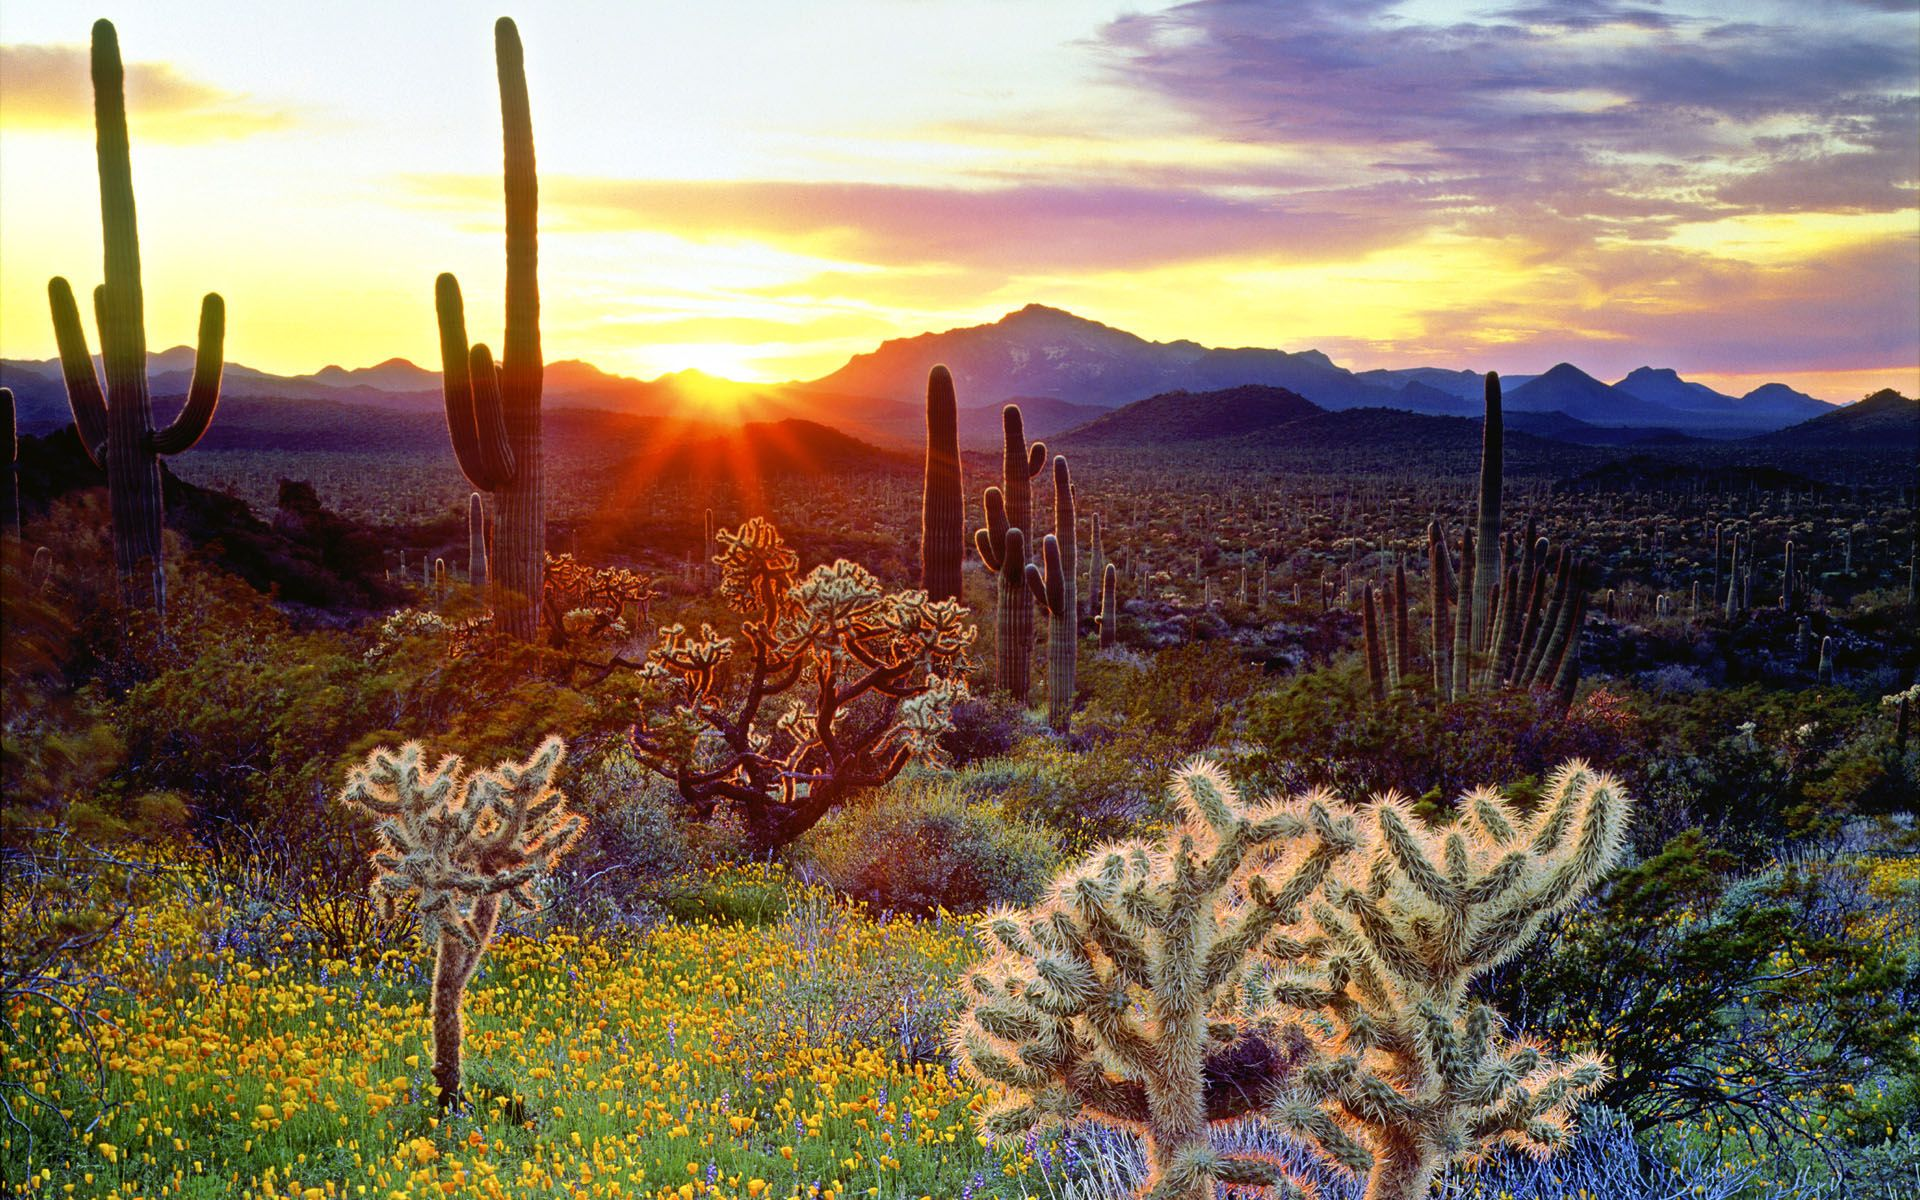 Hd Desktop Wallpapers Widescreen Catus In The Sunset Cacti